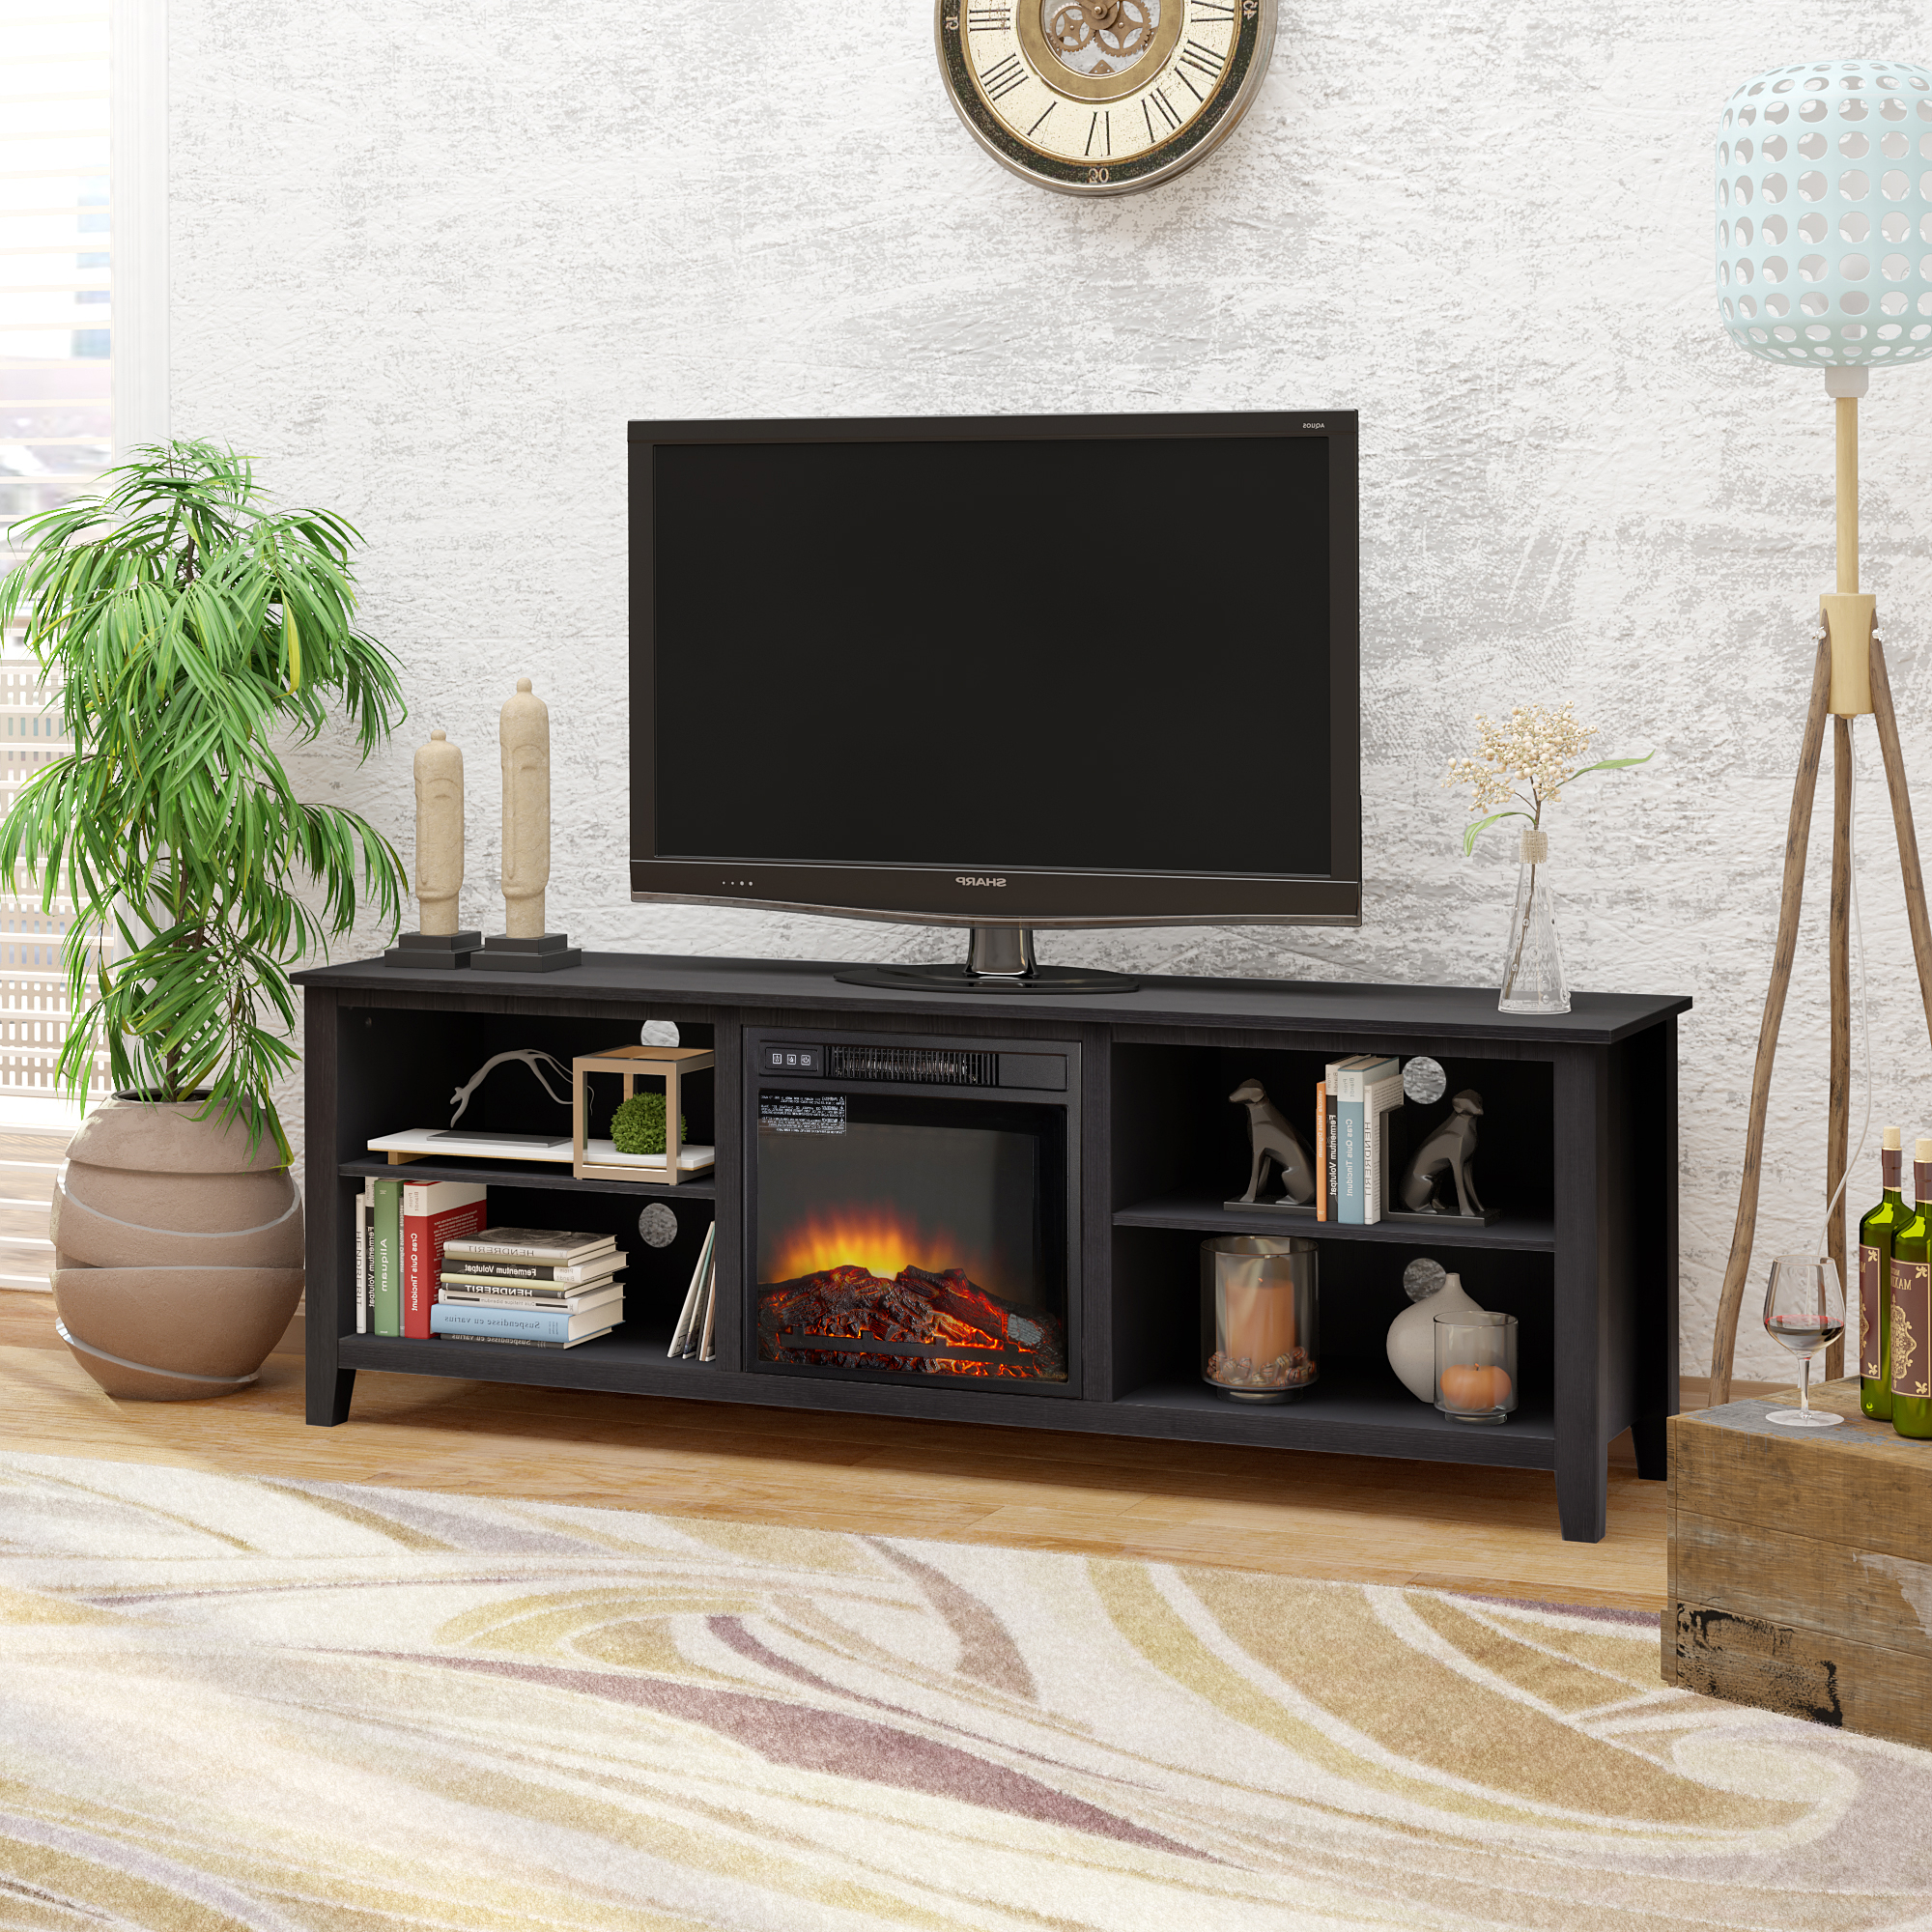 """70"""" Tv Stand Fireplace Media Console For Tvs Up To 80 Intended For 2017 Broward Tv Stands For Tvs Up To 70"""" (View 4 of 25)"""